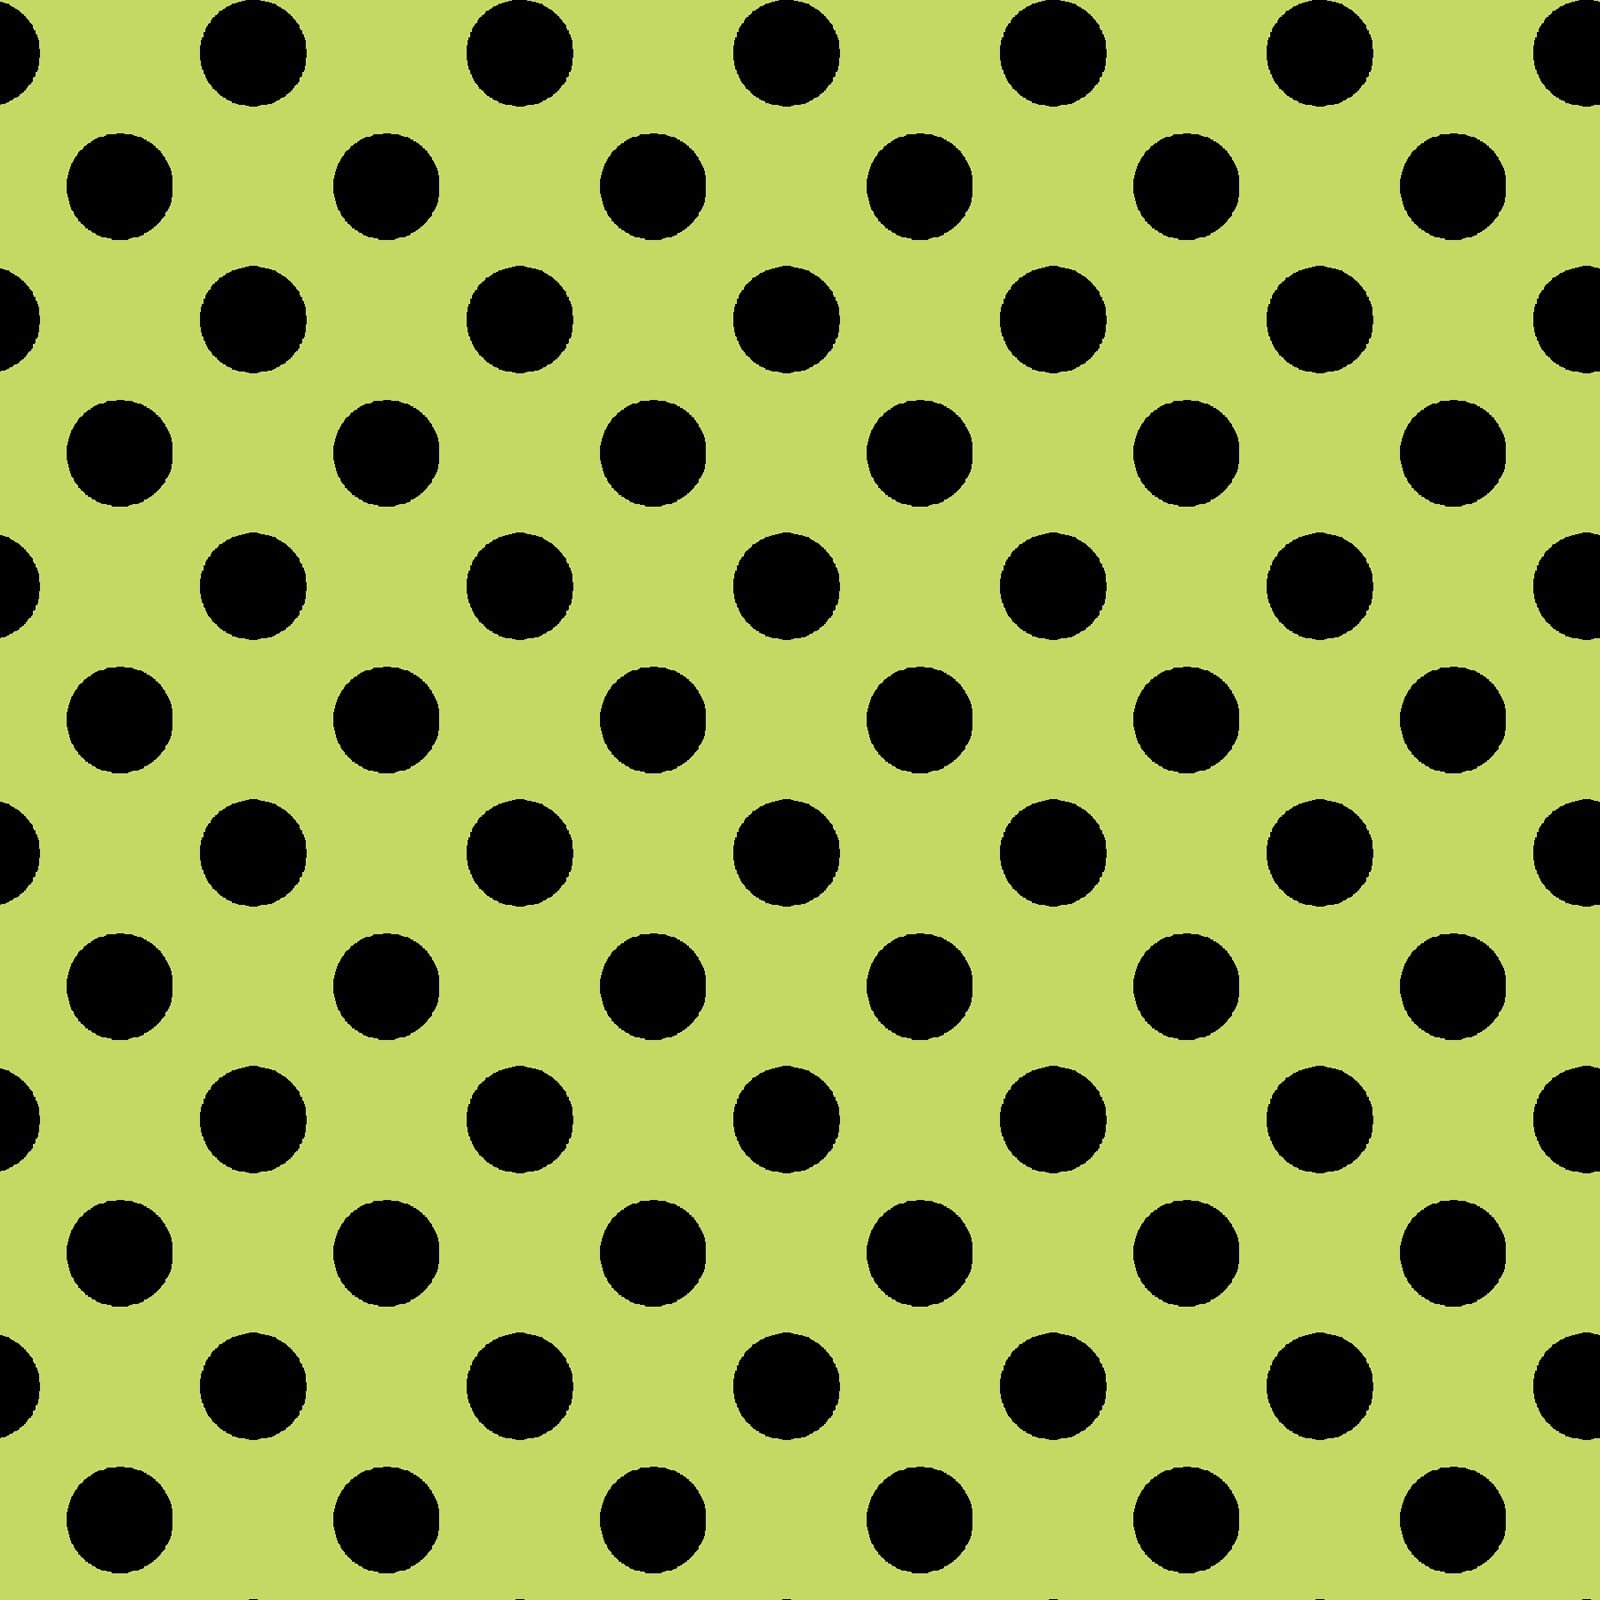 Broomhilda's Bakery - Dots - Lime/Black